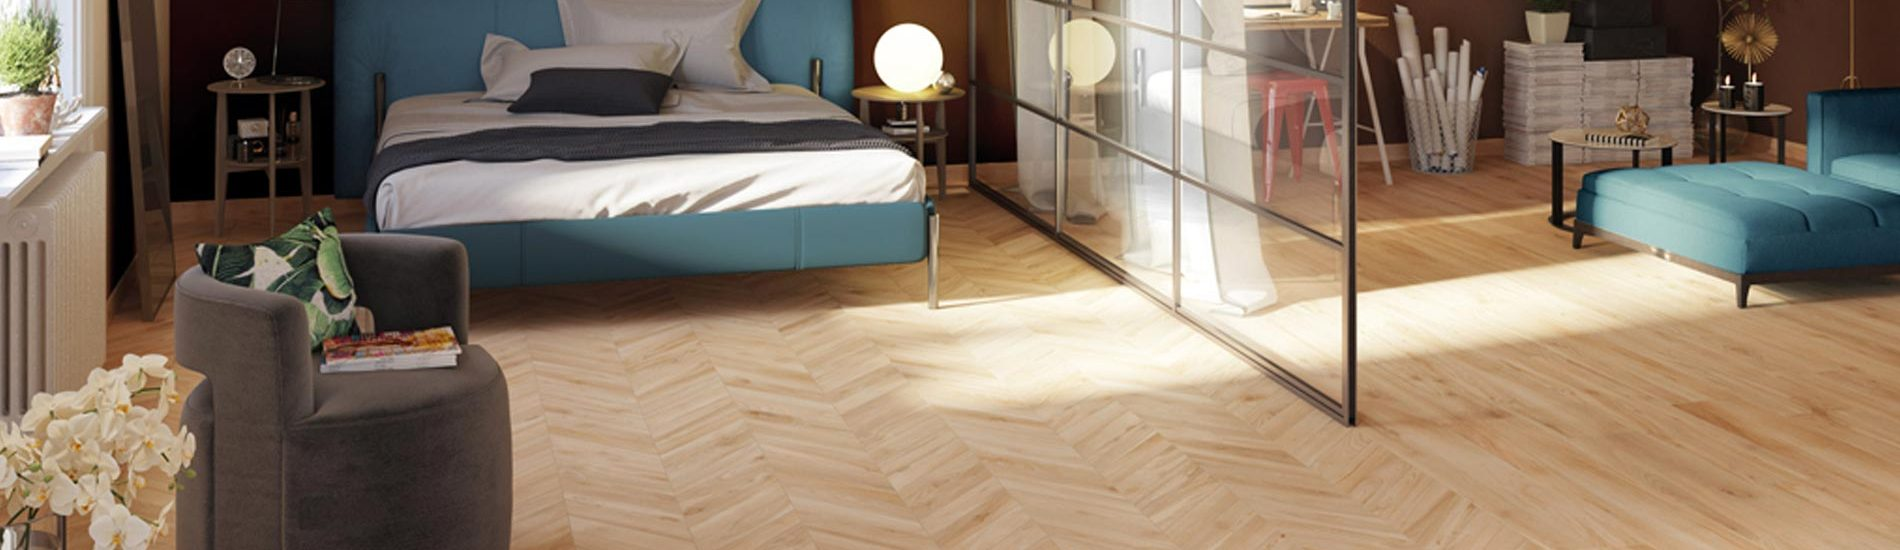 banner-woodie-wood-look-tile-ceramica-rondine